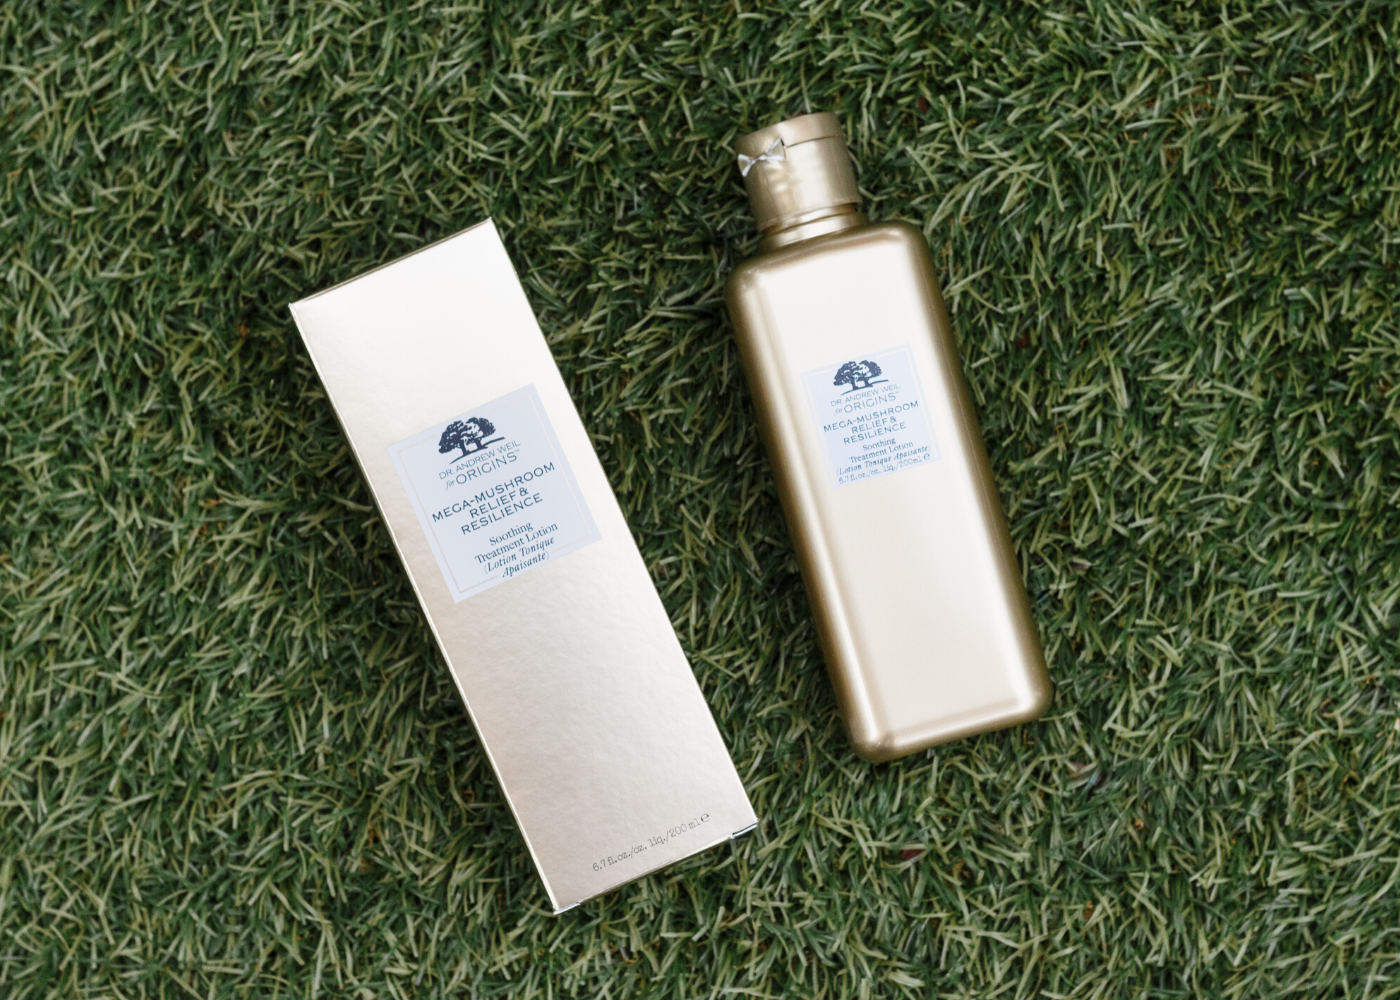 Chic beauty packaging for CNY: Origins has a stylish addition to your skincare collection and routine